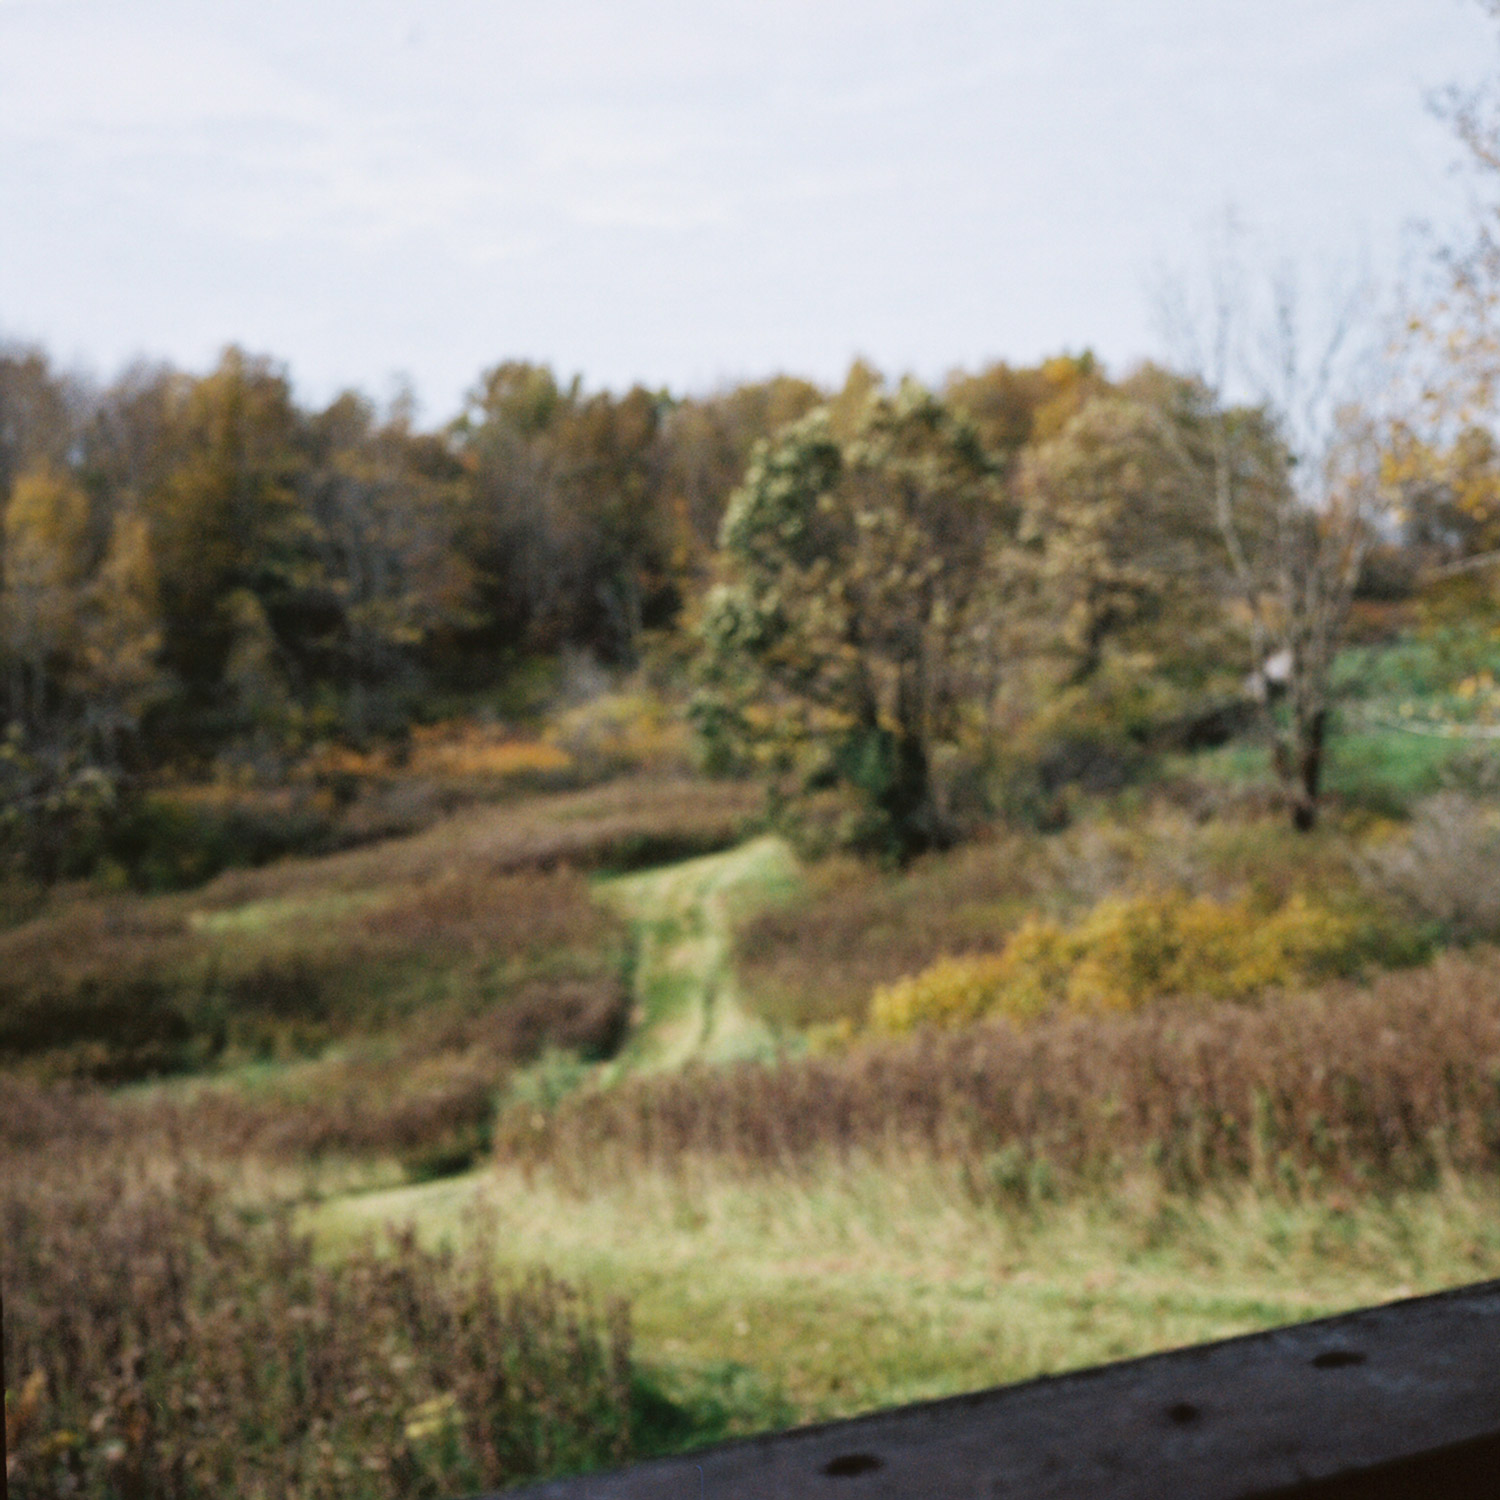 documentary-photography-wisconsin-farm-01.jpg